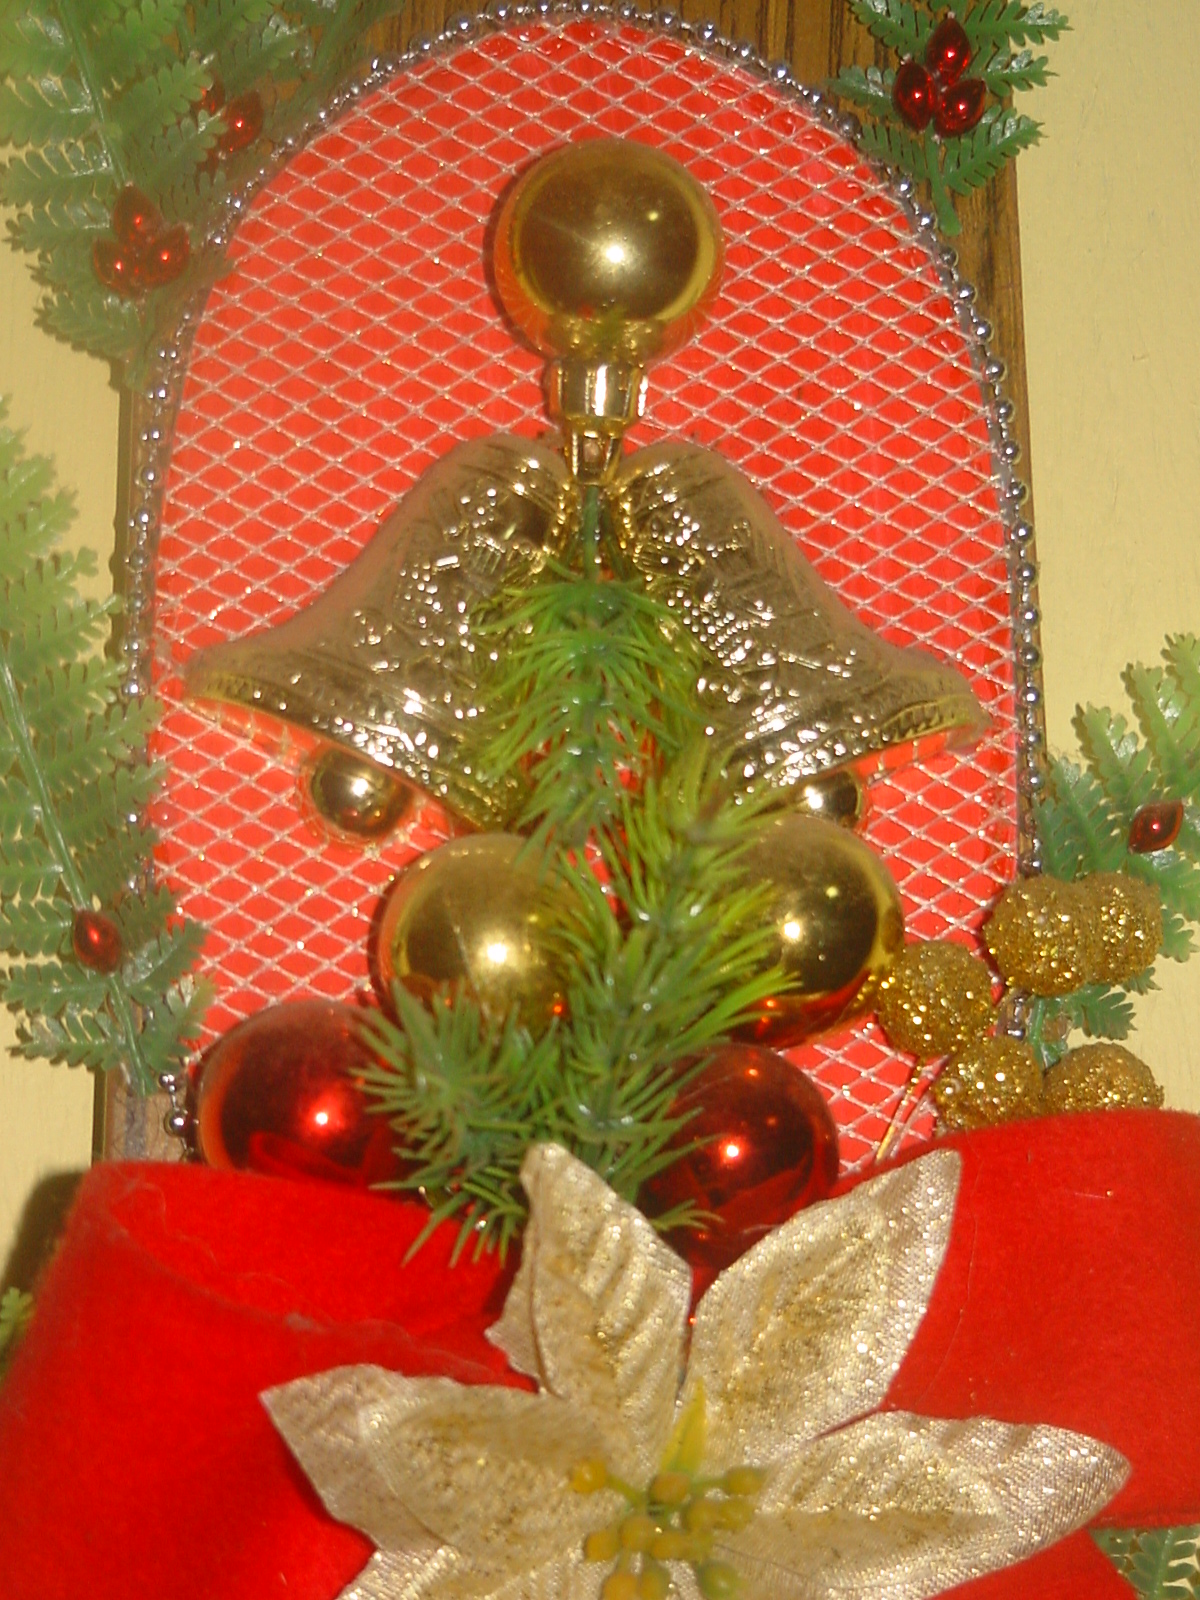 Christmas Decor Made From Recycled Materials : Friends are forever christmas decor from recycled